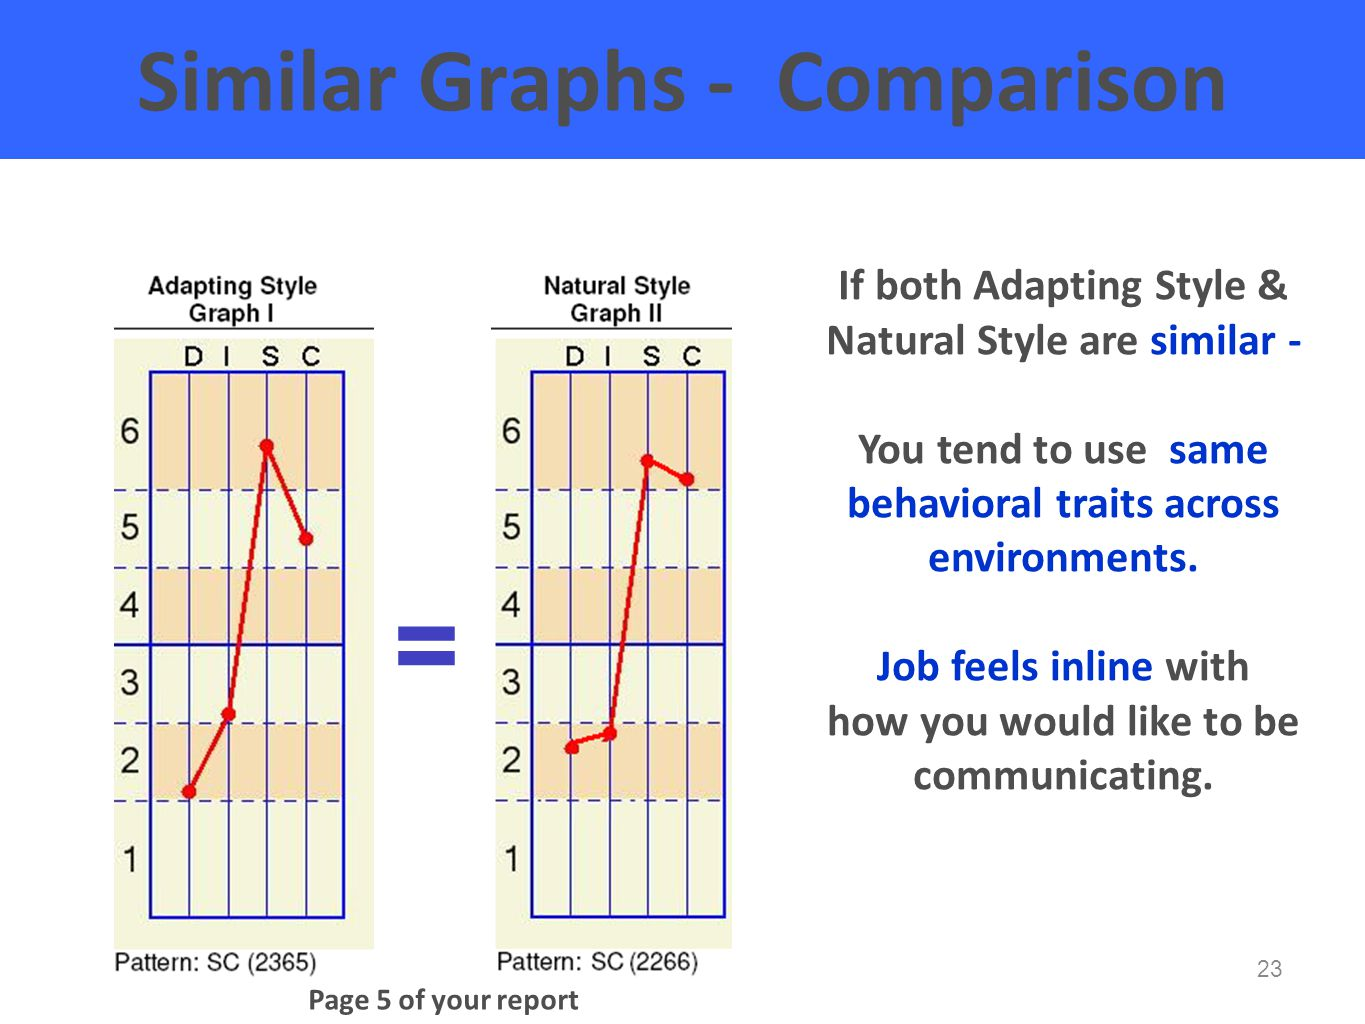 23 Similar Graphs - Comparison If both Adapting Style & Natural Style are similar - You tend to use same behavioral traits across environments.